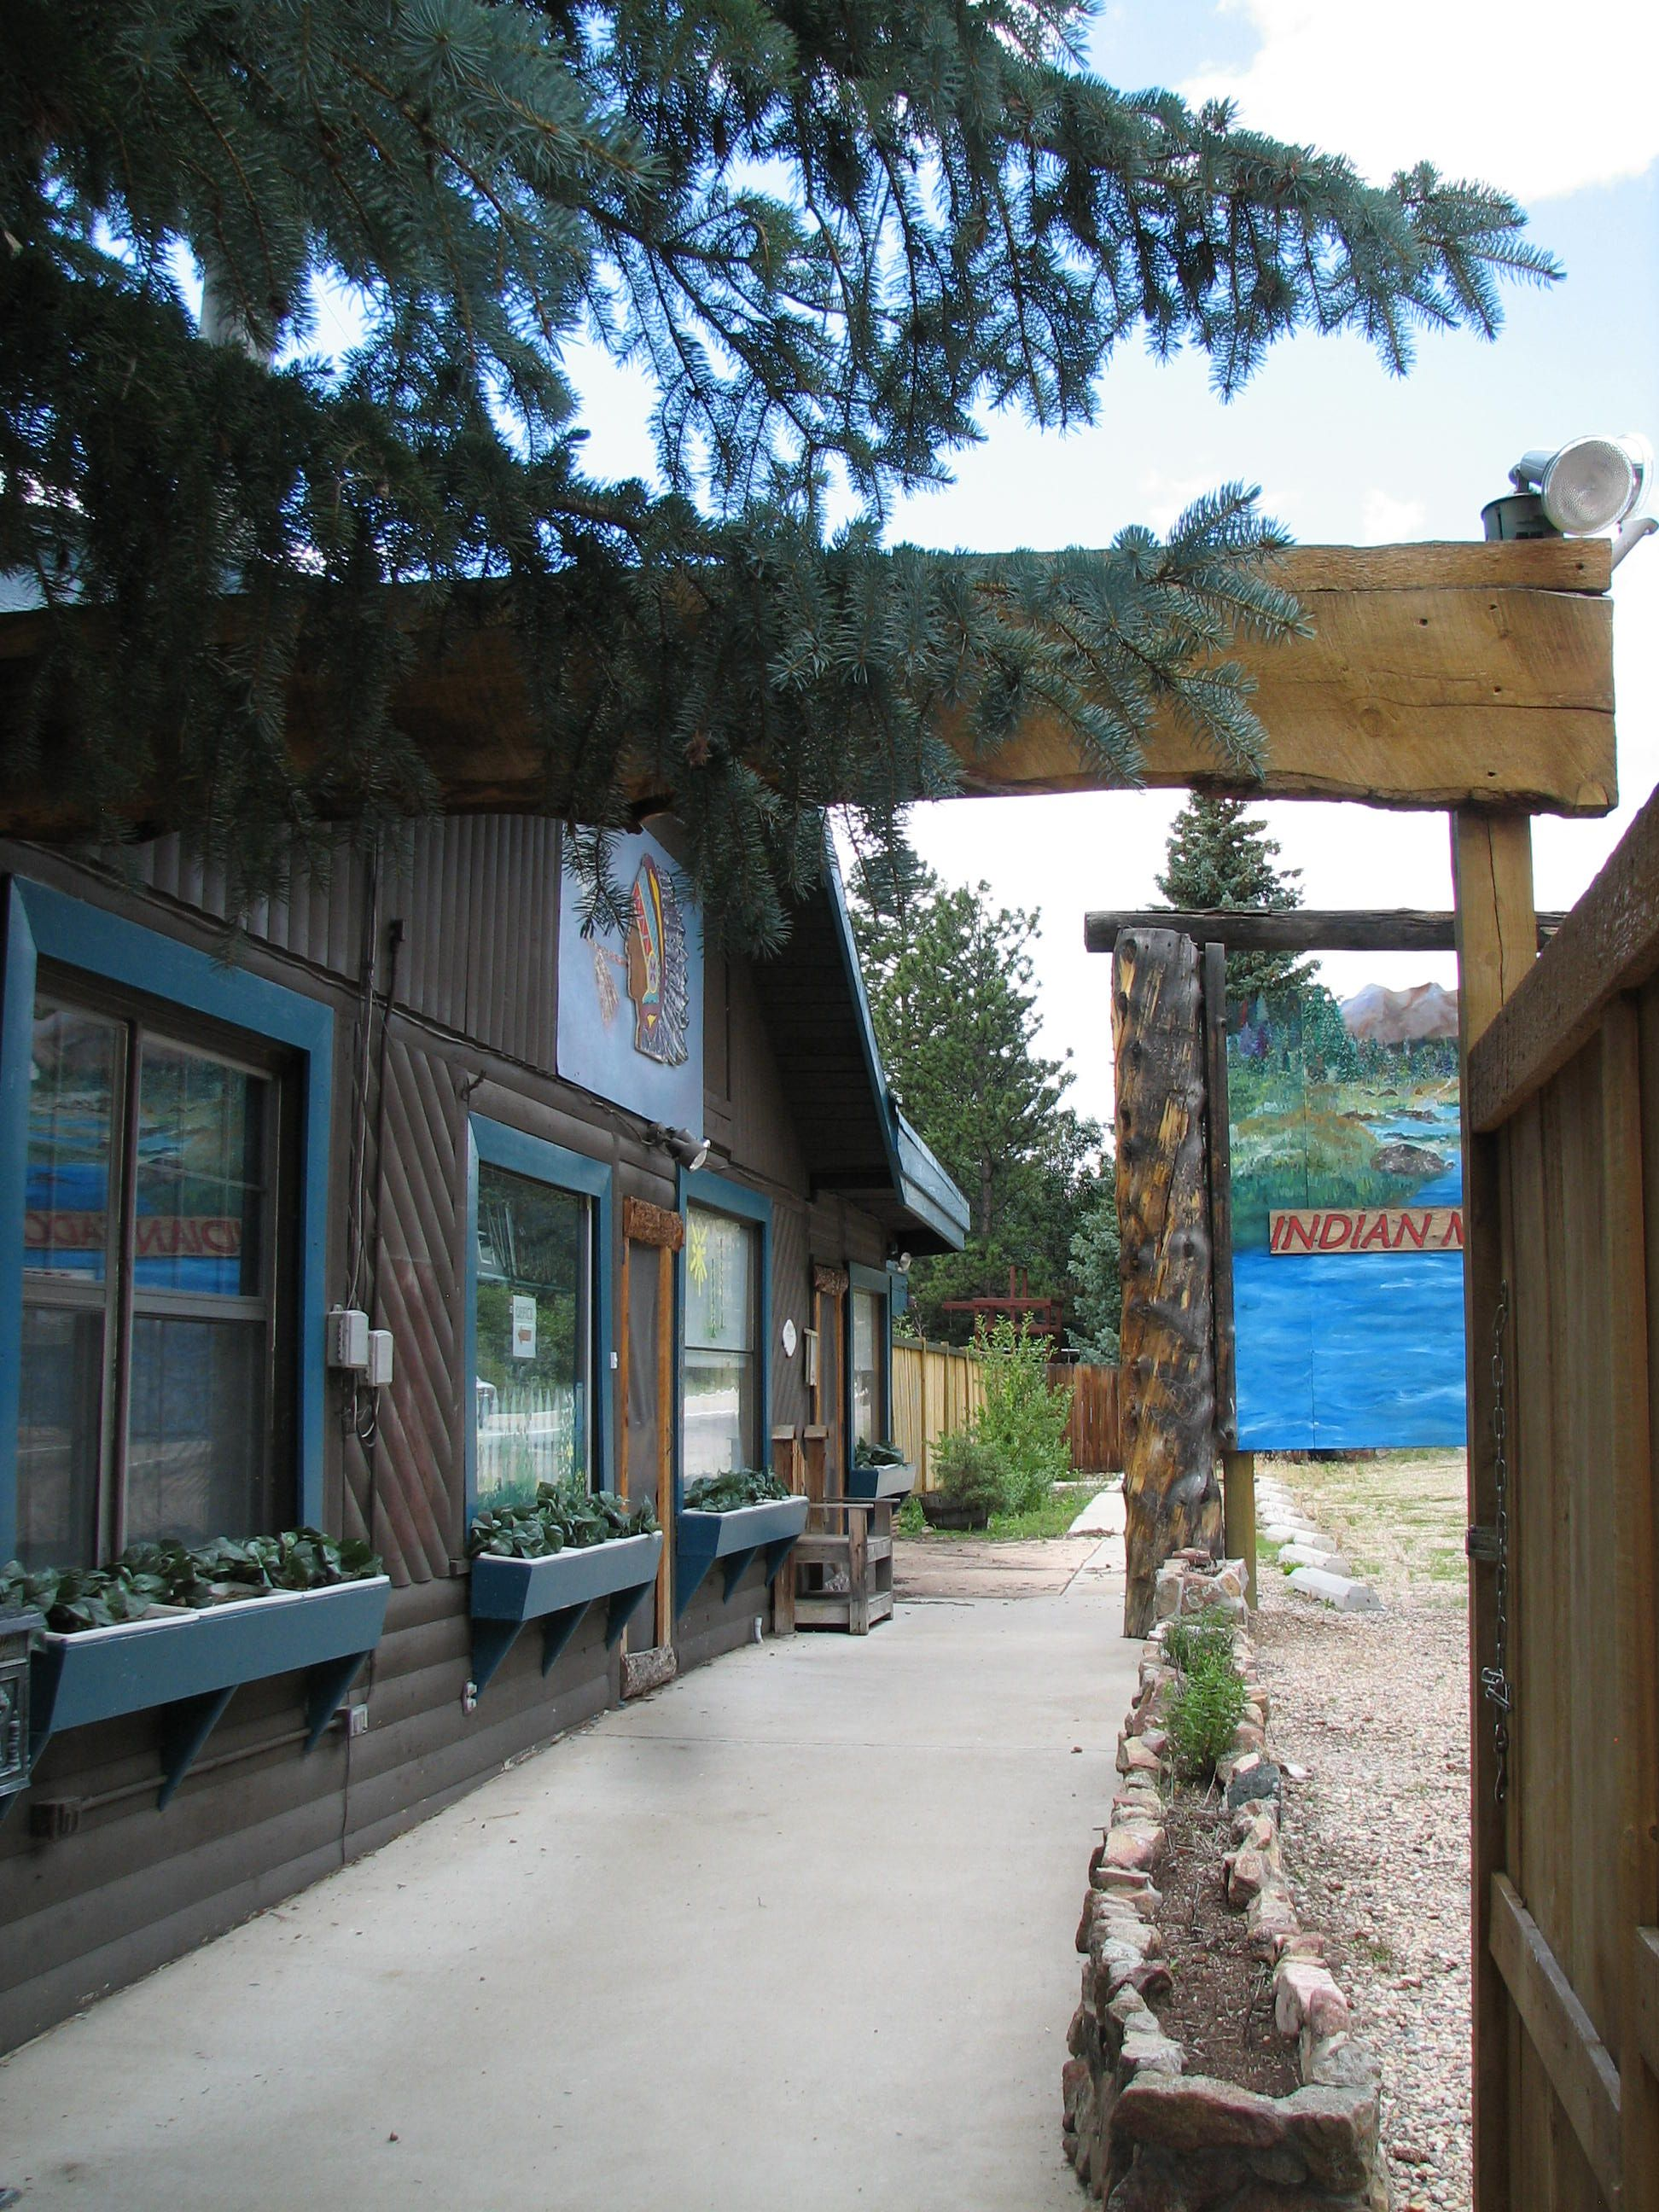 Weddings, Family Reunions,nightly Cabins. Come And Explore